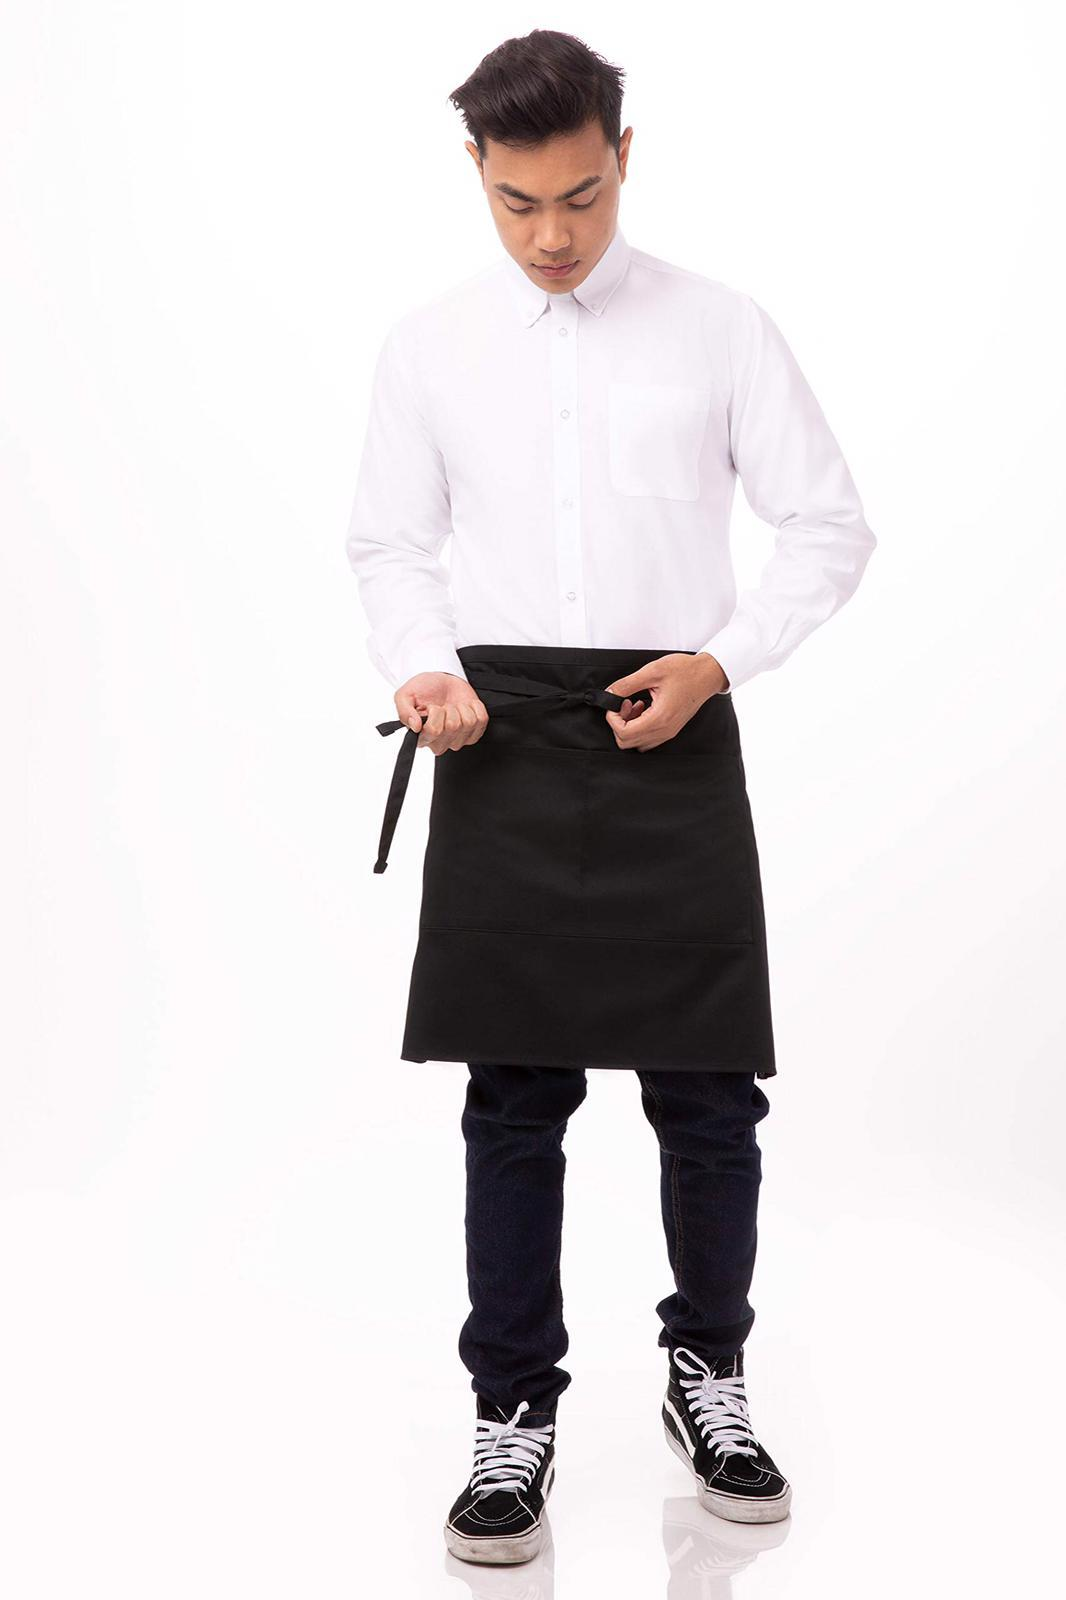 Half Bistro Apron: Black. - Mabrook Hotel Supplies